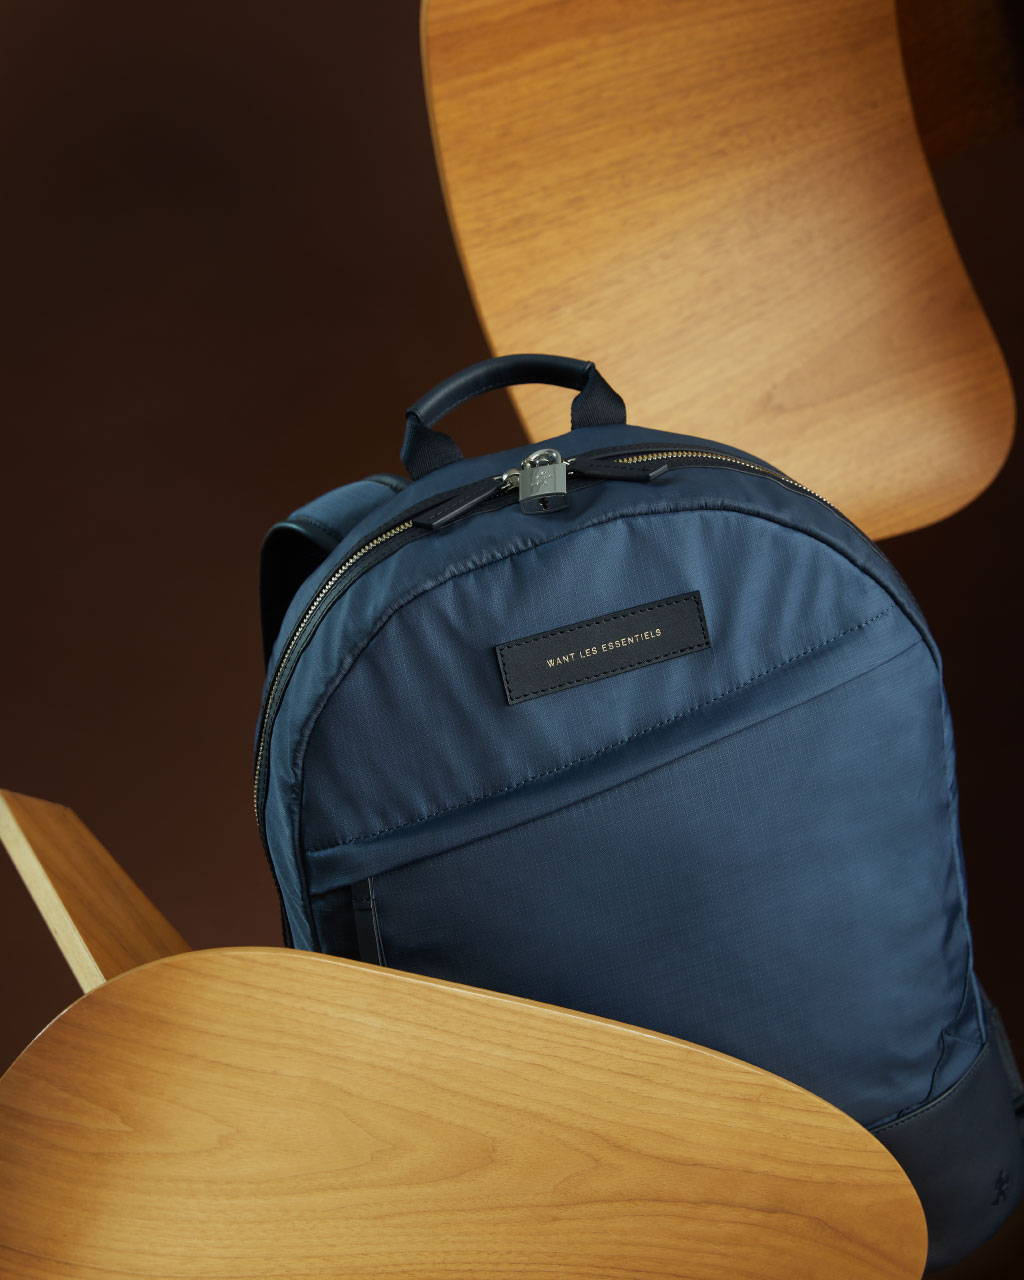 /products/bruce-pask-collaboration-kastrup-ripstop-nylon-backpack